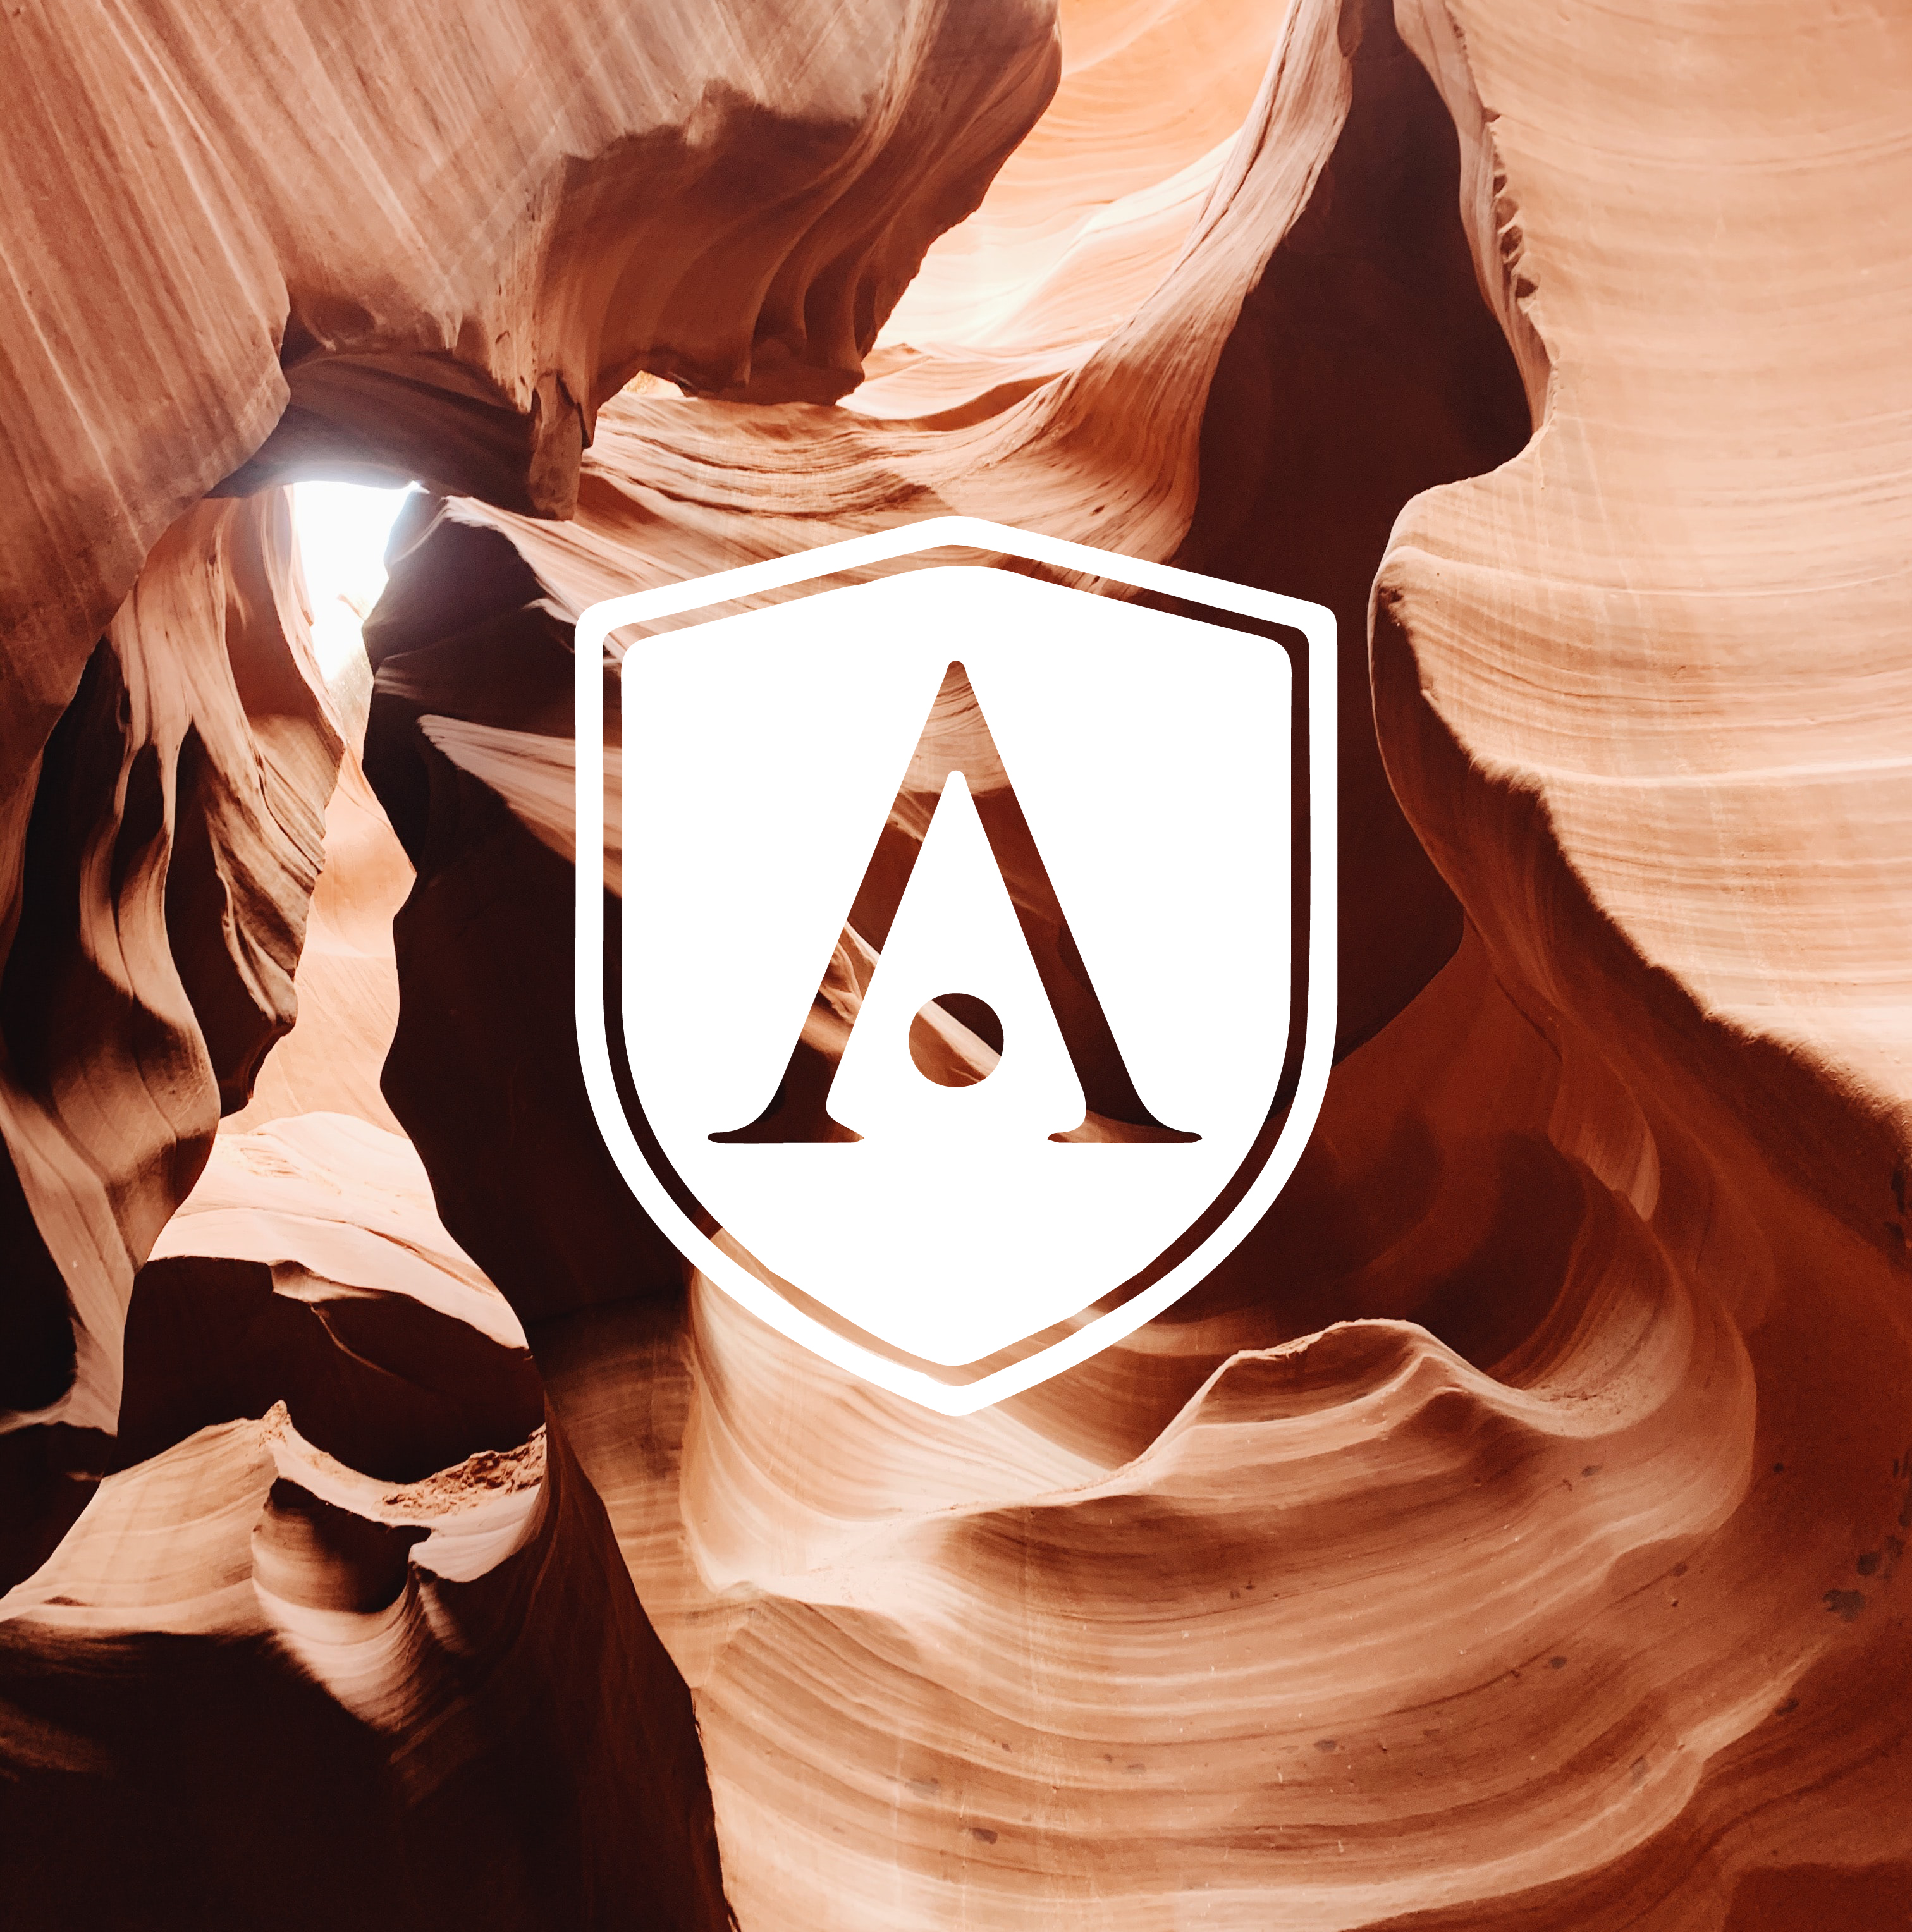 aegis logo over rock formations